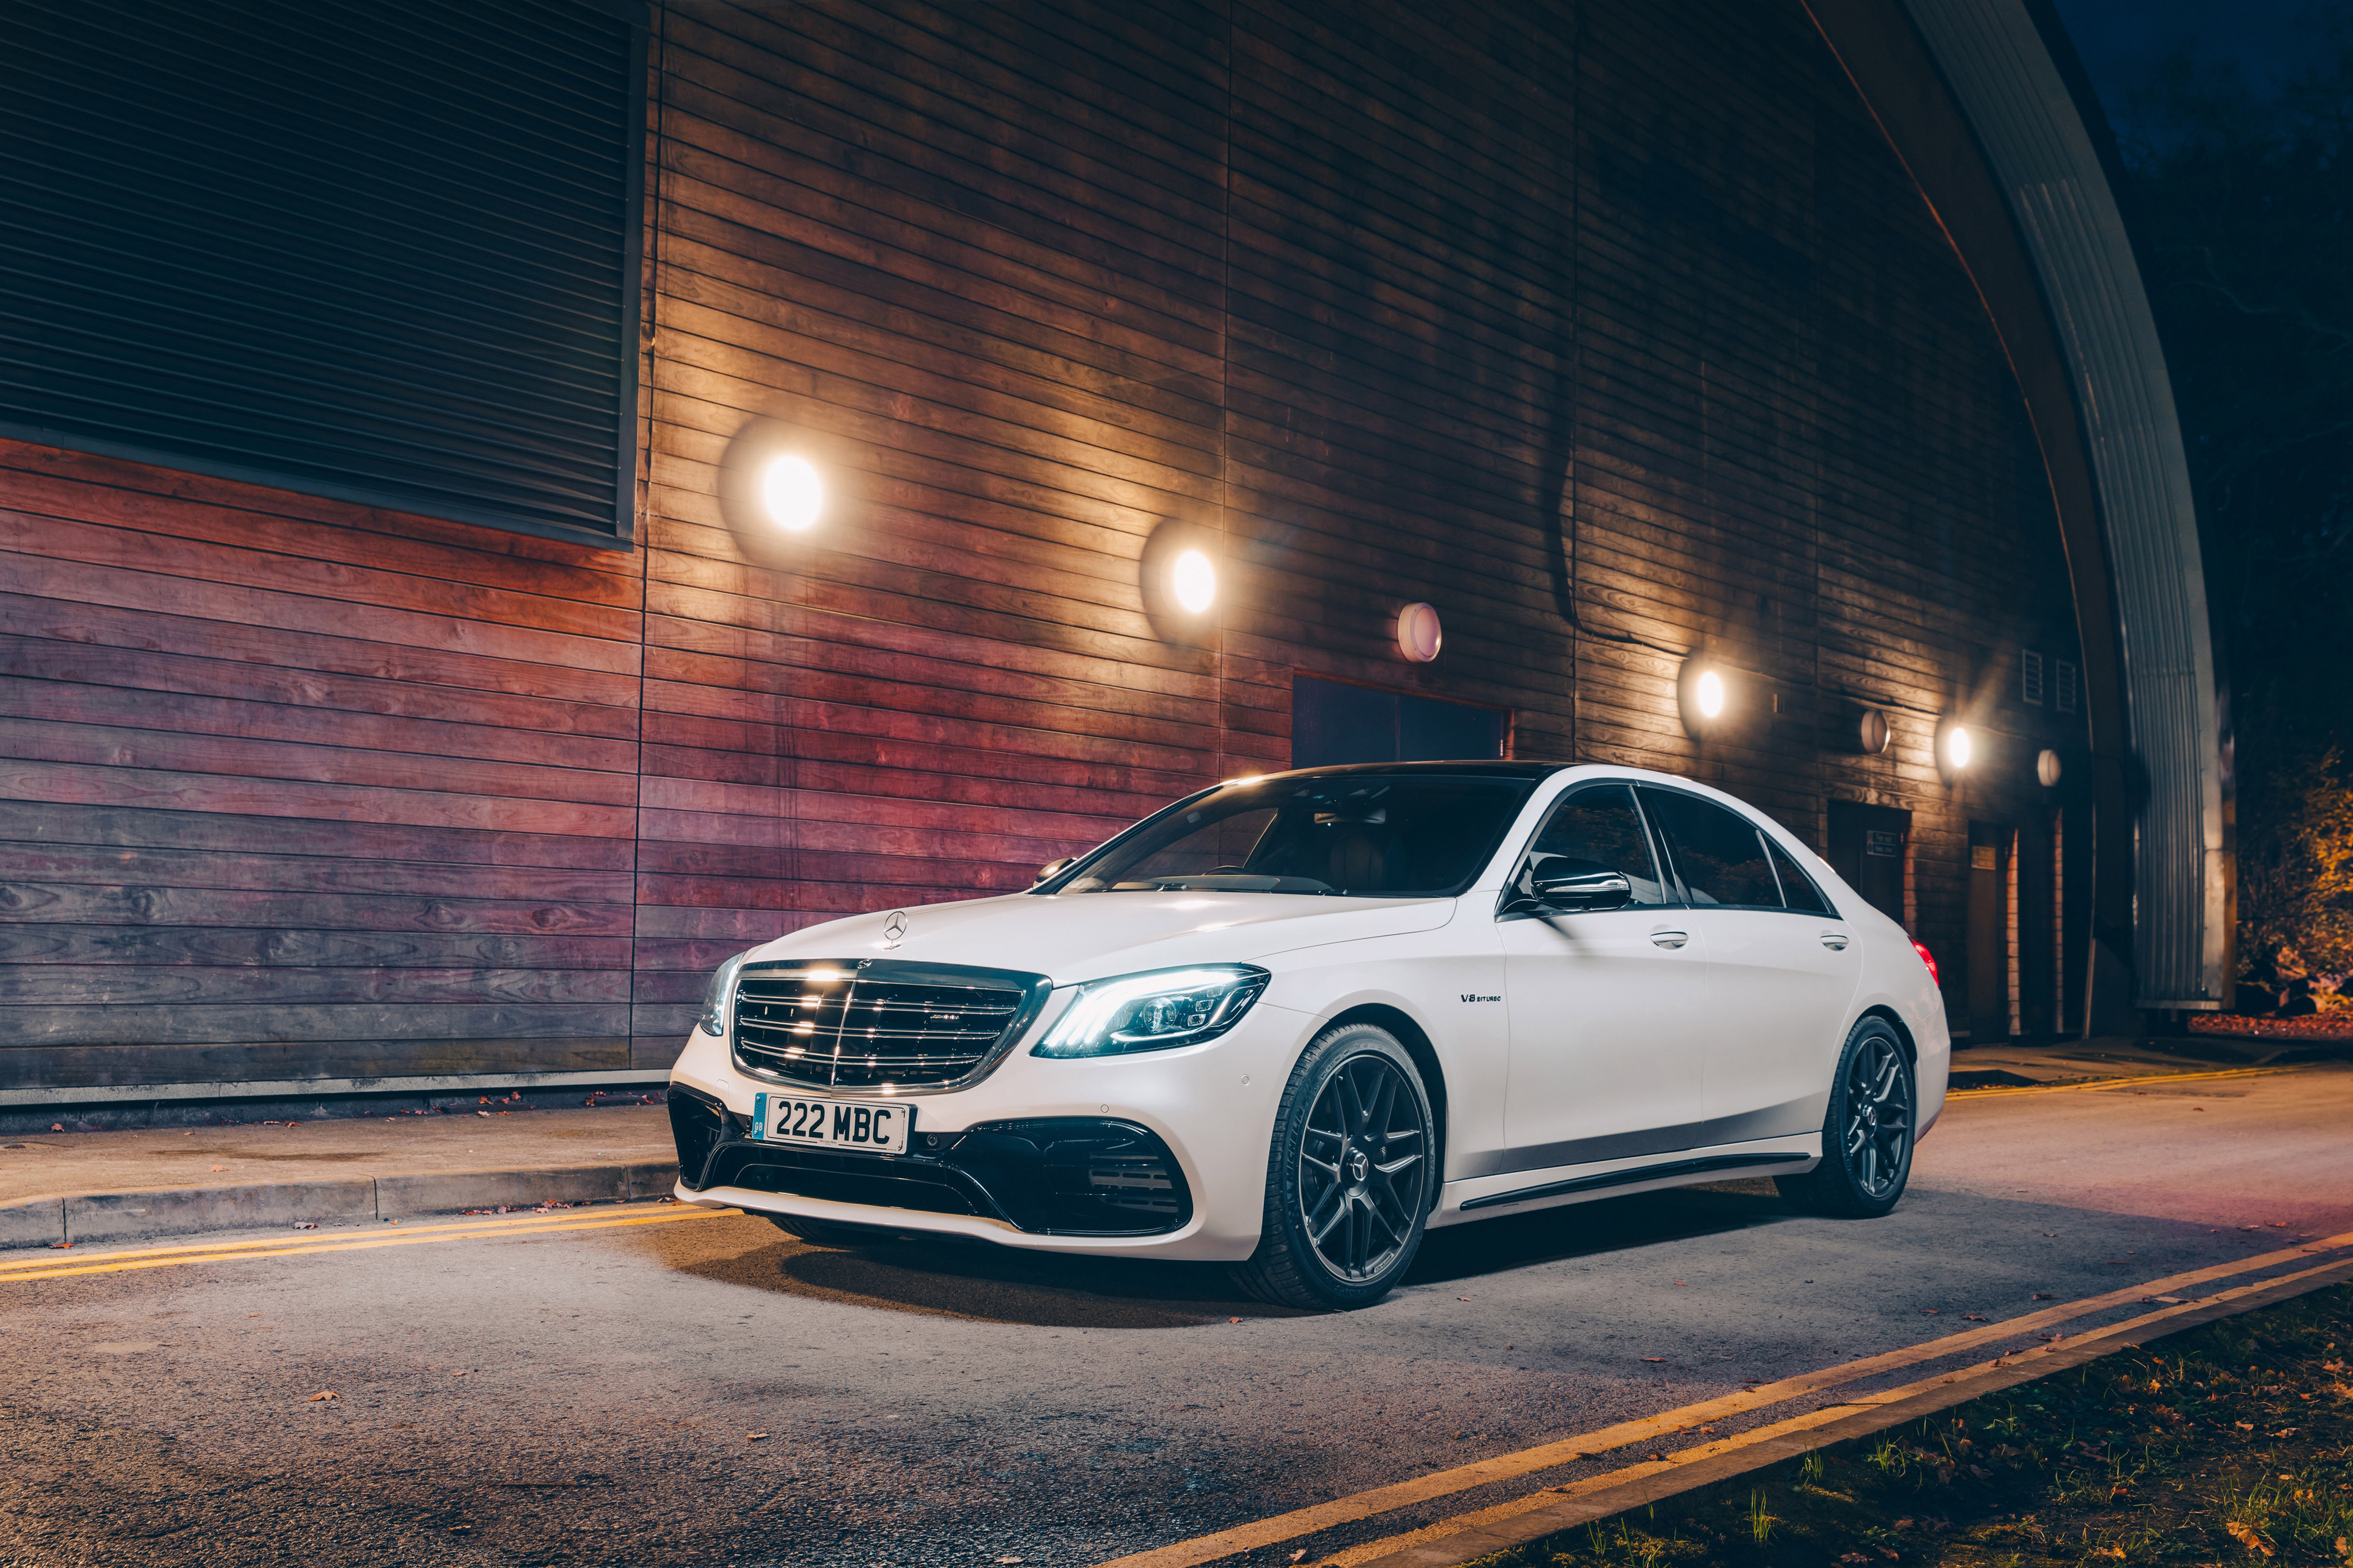 S 63 Amg Wallpaper: 1336x768 Mercedes AMG S 63 4MATIC Laptop HD HD 4k